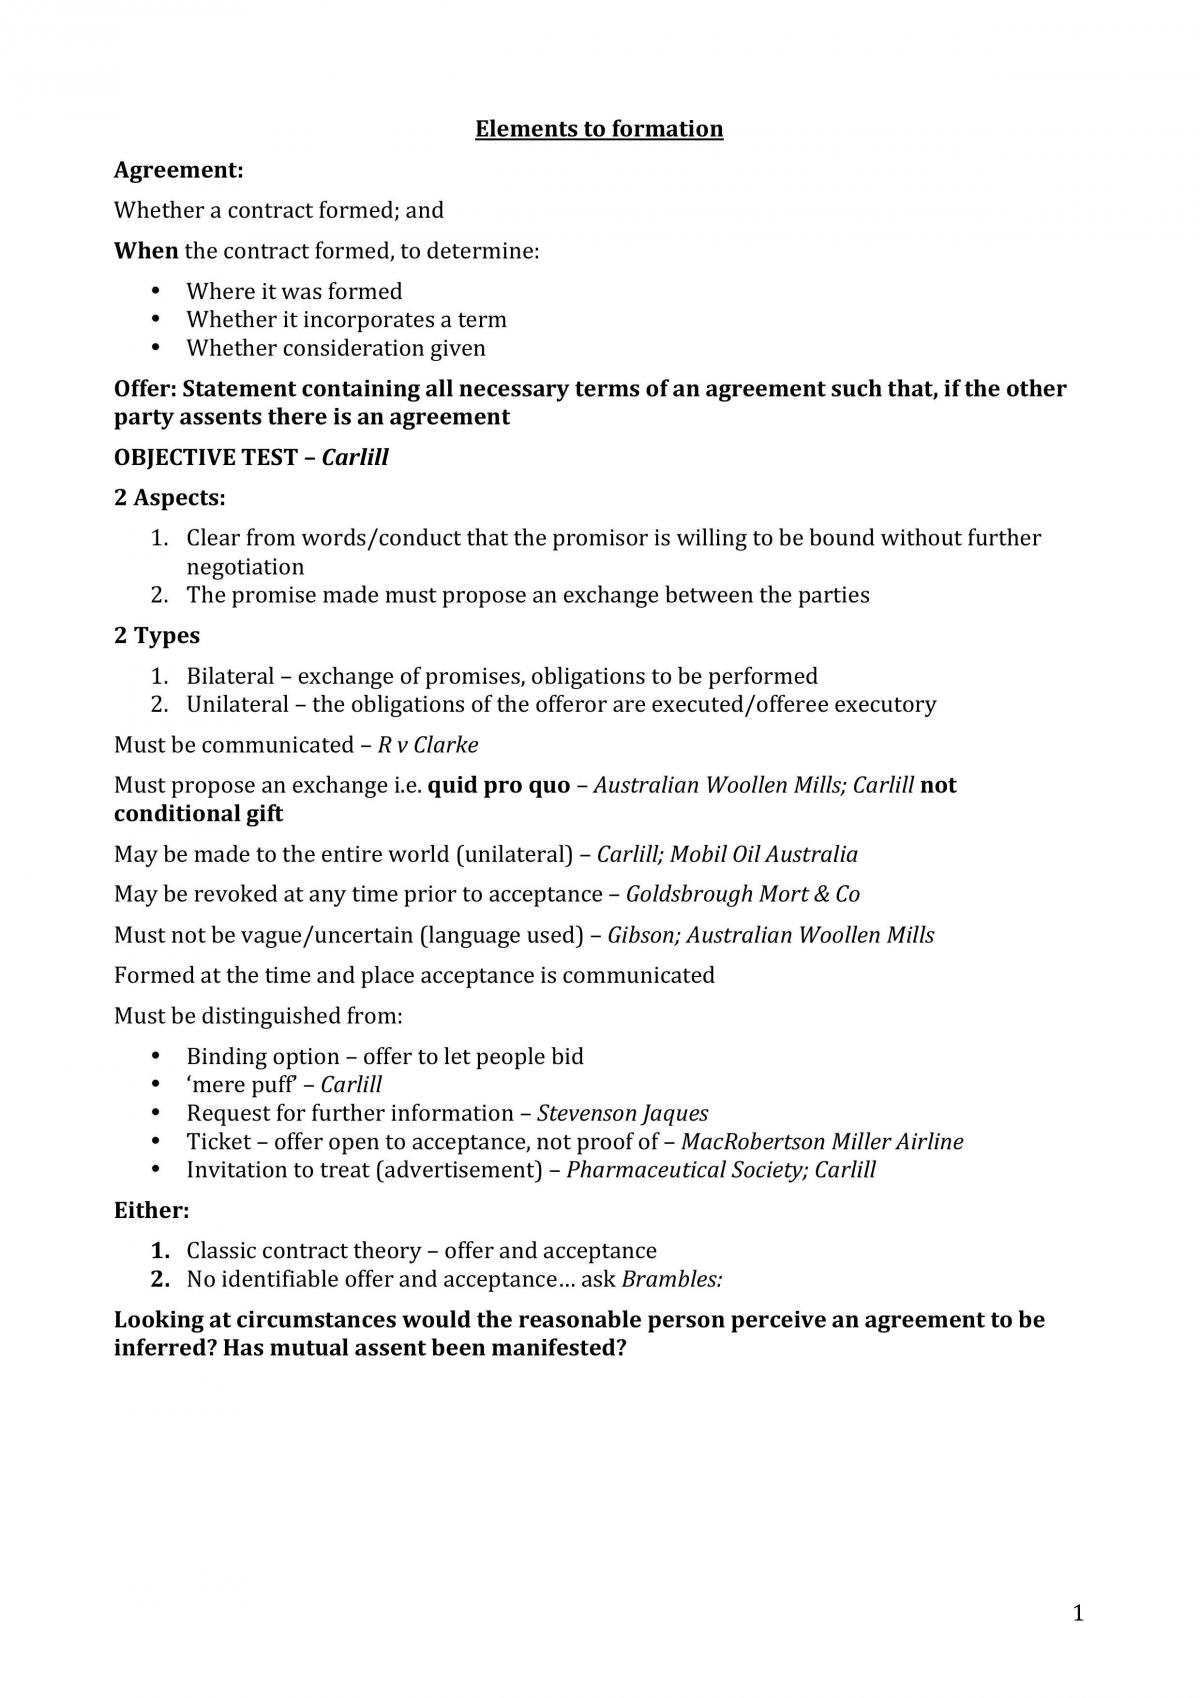 Exam Notes LLB120 - Page 1